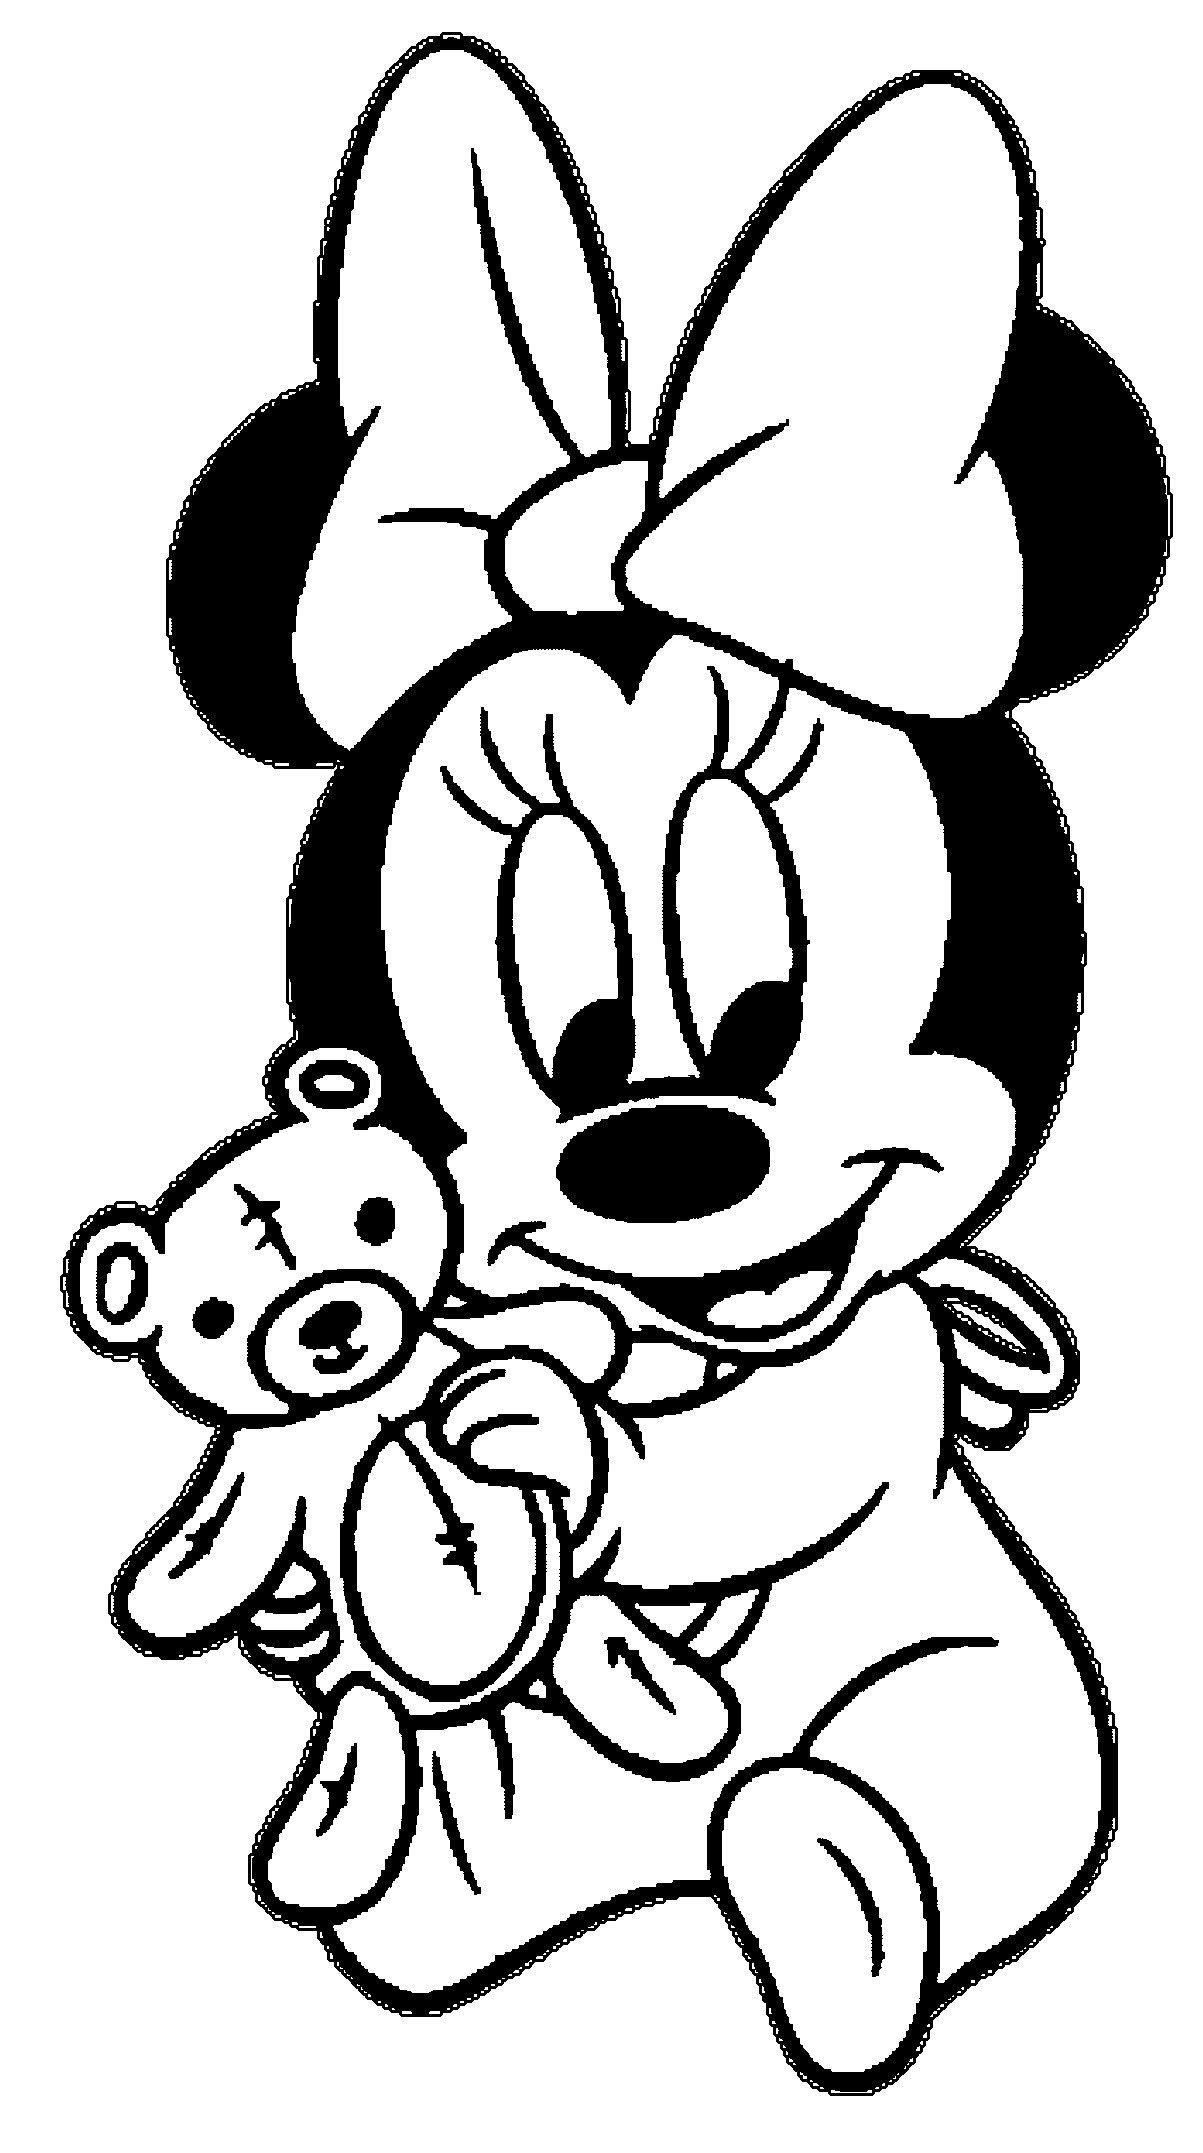 Cute Baby Minnie Mouse Coloring Pages In 2020 Minnie Mouse Coloring Pages Disney Coloring Pages Baby Coloring Pages